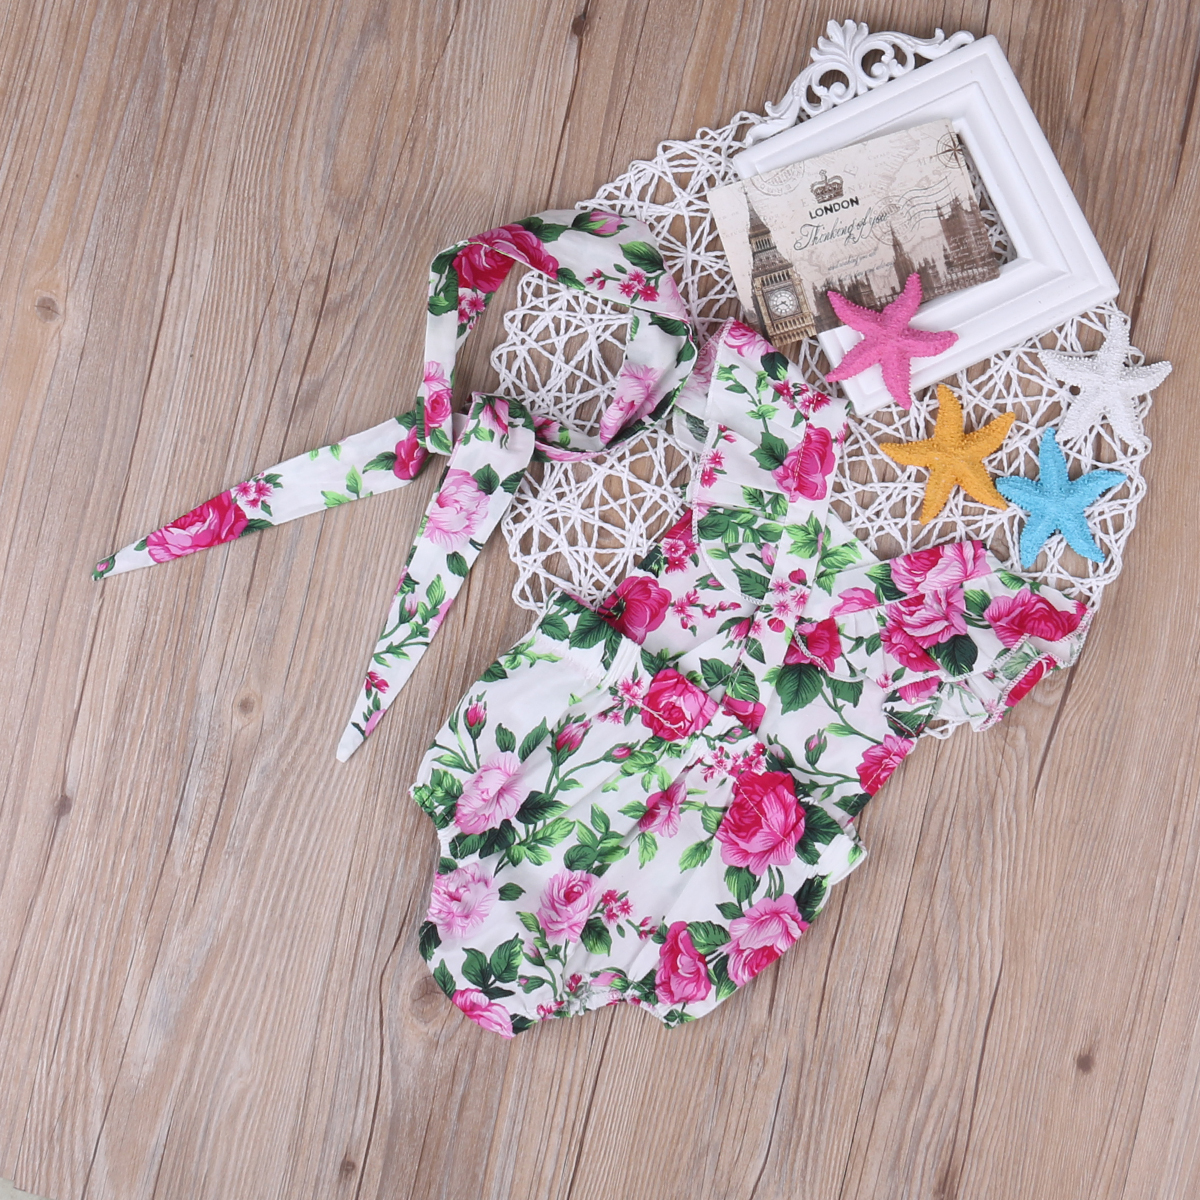 Cute 2 Pieces Spaghetti Halter Romper+Headbamd Jumpsuit Floral Sunsuit Outfits Set for Baby Girl